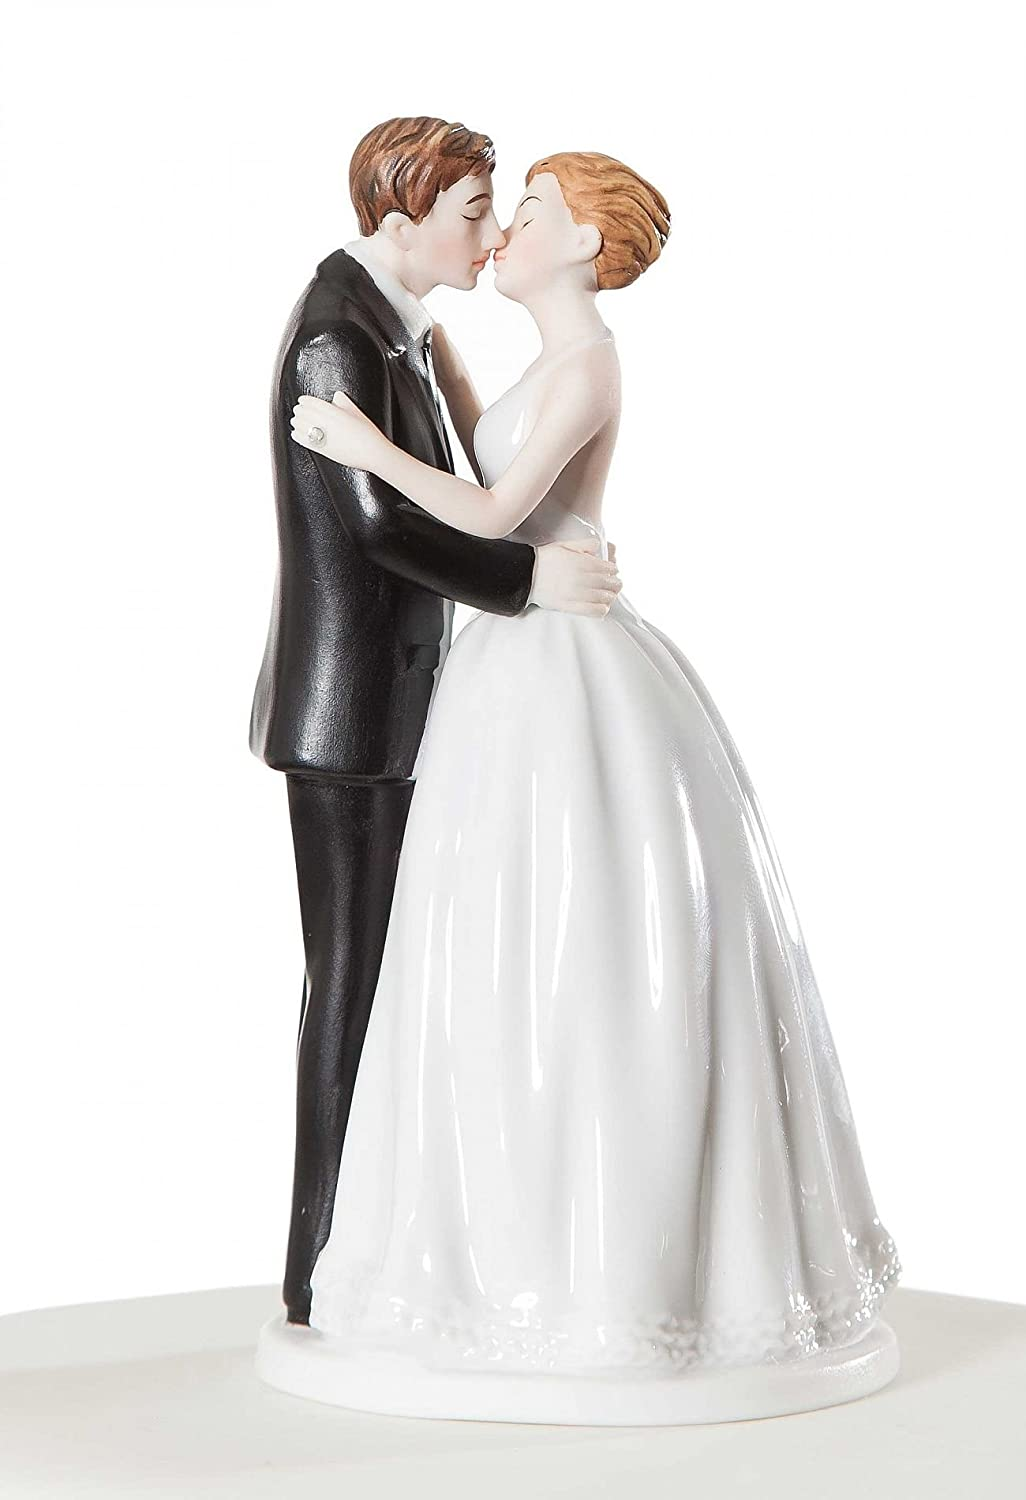 Wedding collectibles romance kissing couple wedding cake topper wedding collectibles romance kissing couple wedding cake topper figurine amazon kitchen home junglespirit Gallery